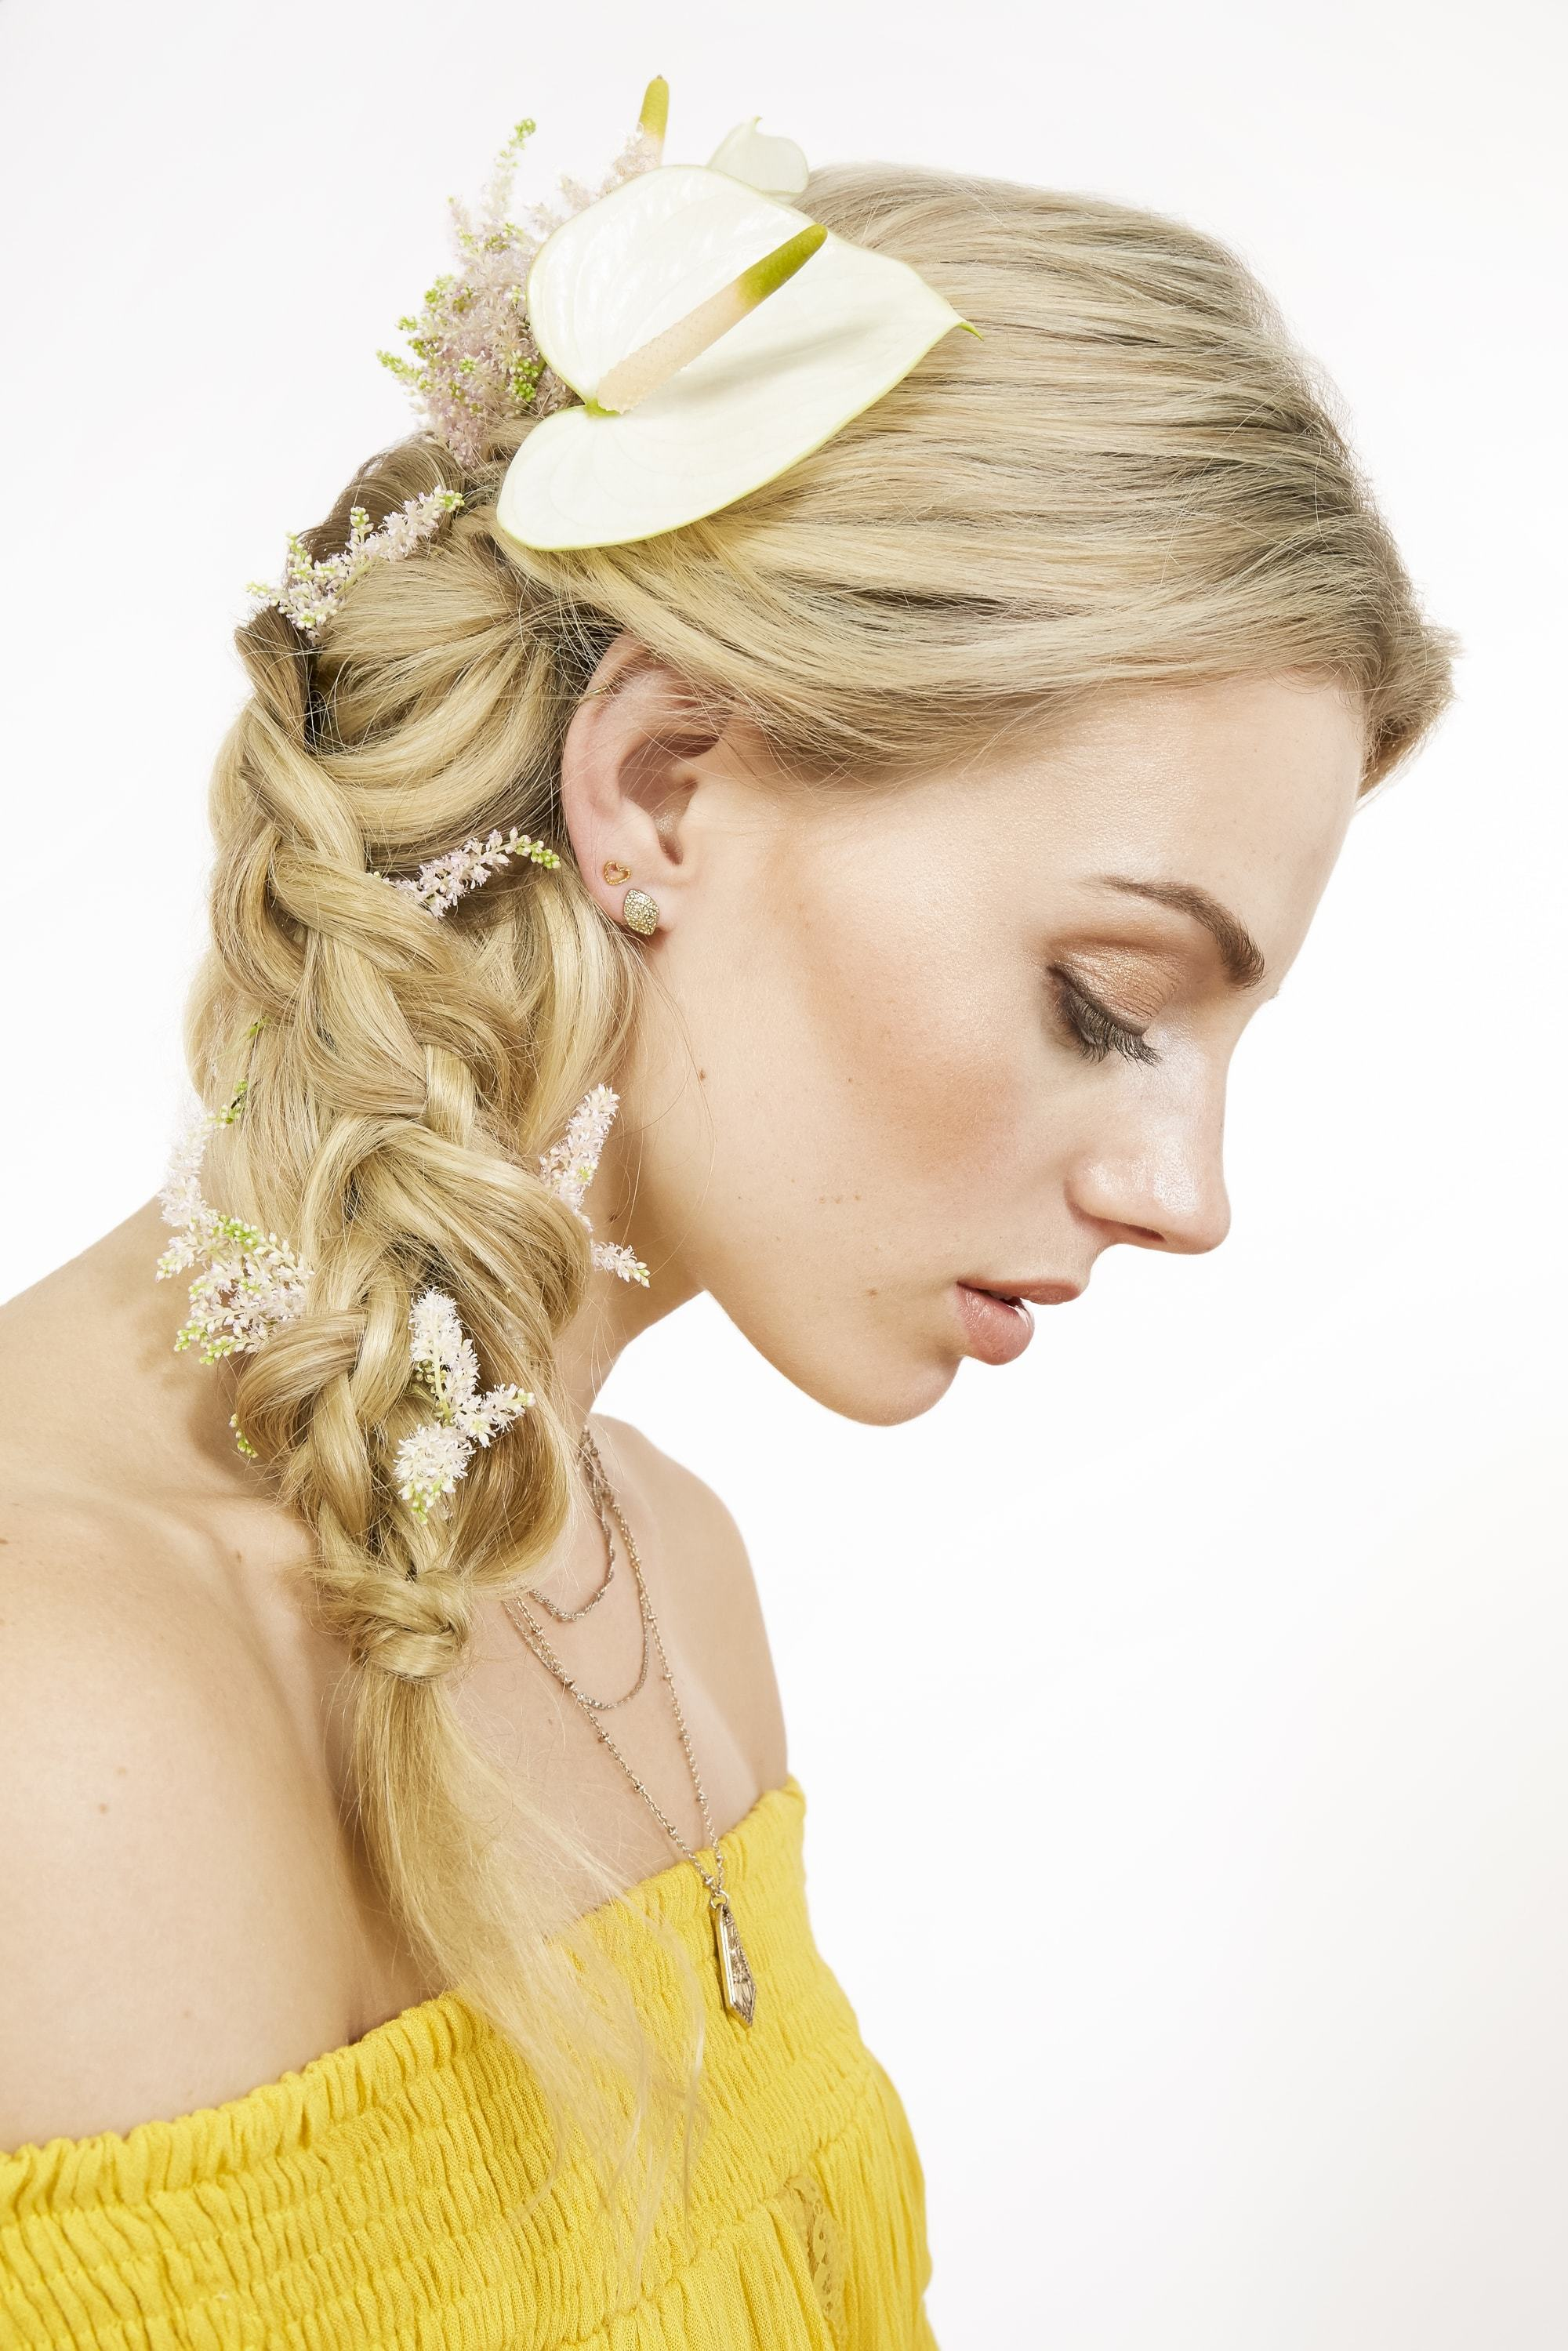 close up shot of model with loose side braided ponytail with flower in it, wearing yellow top and posing outside